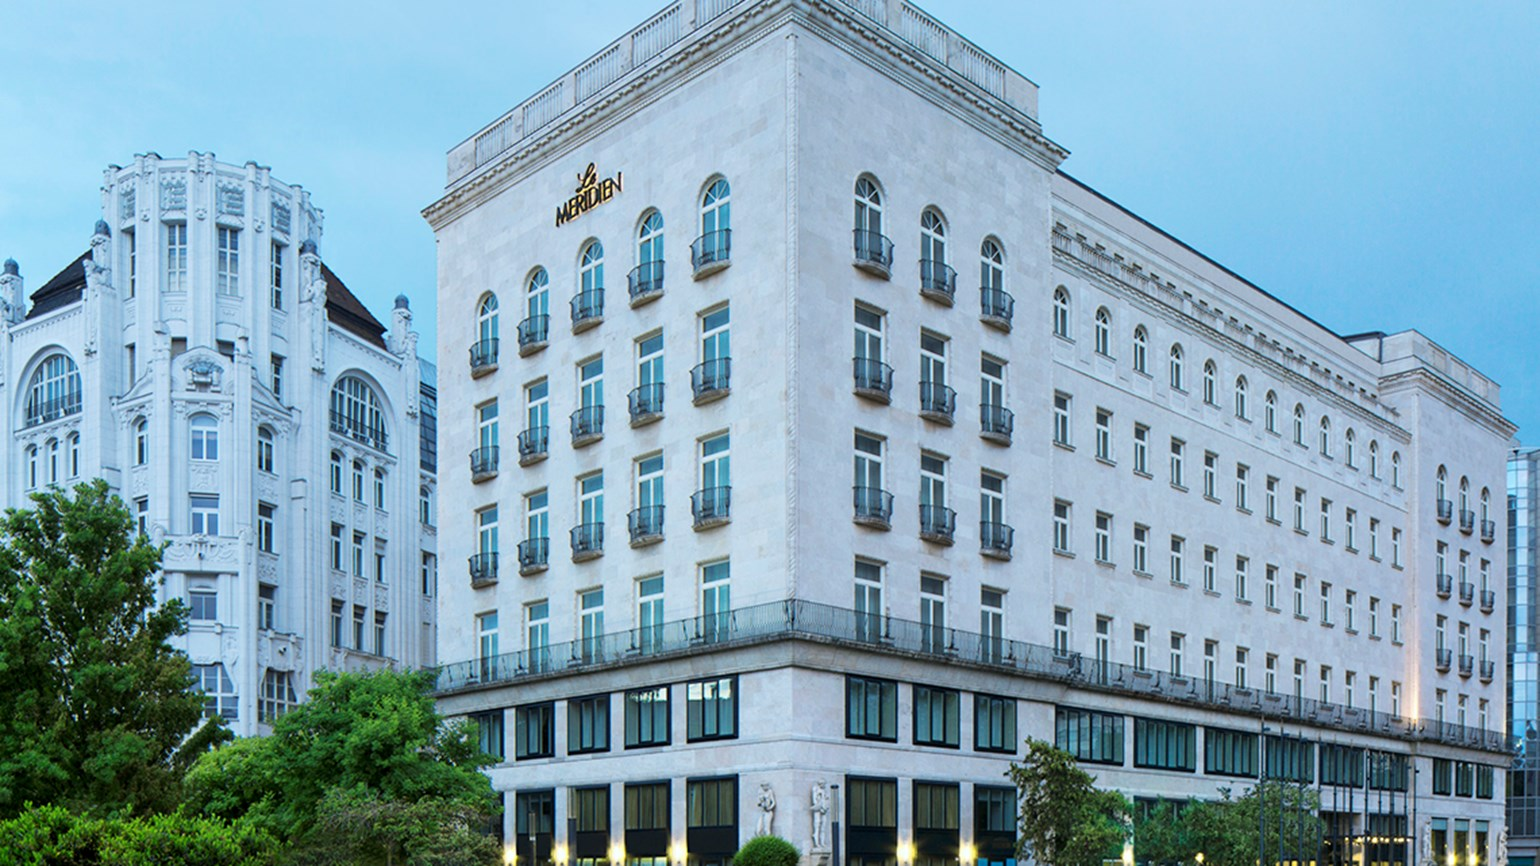 Ritz-Carlton to take over Budapest hotel next year